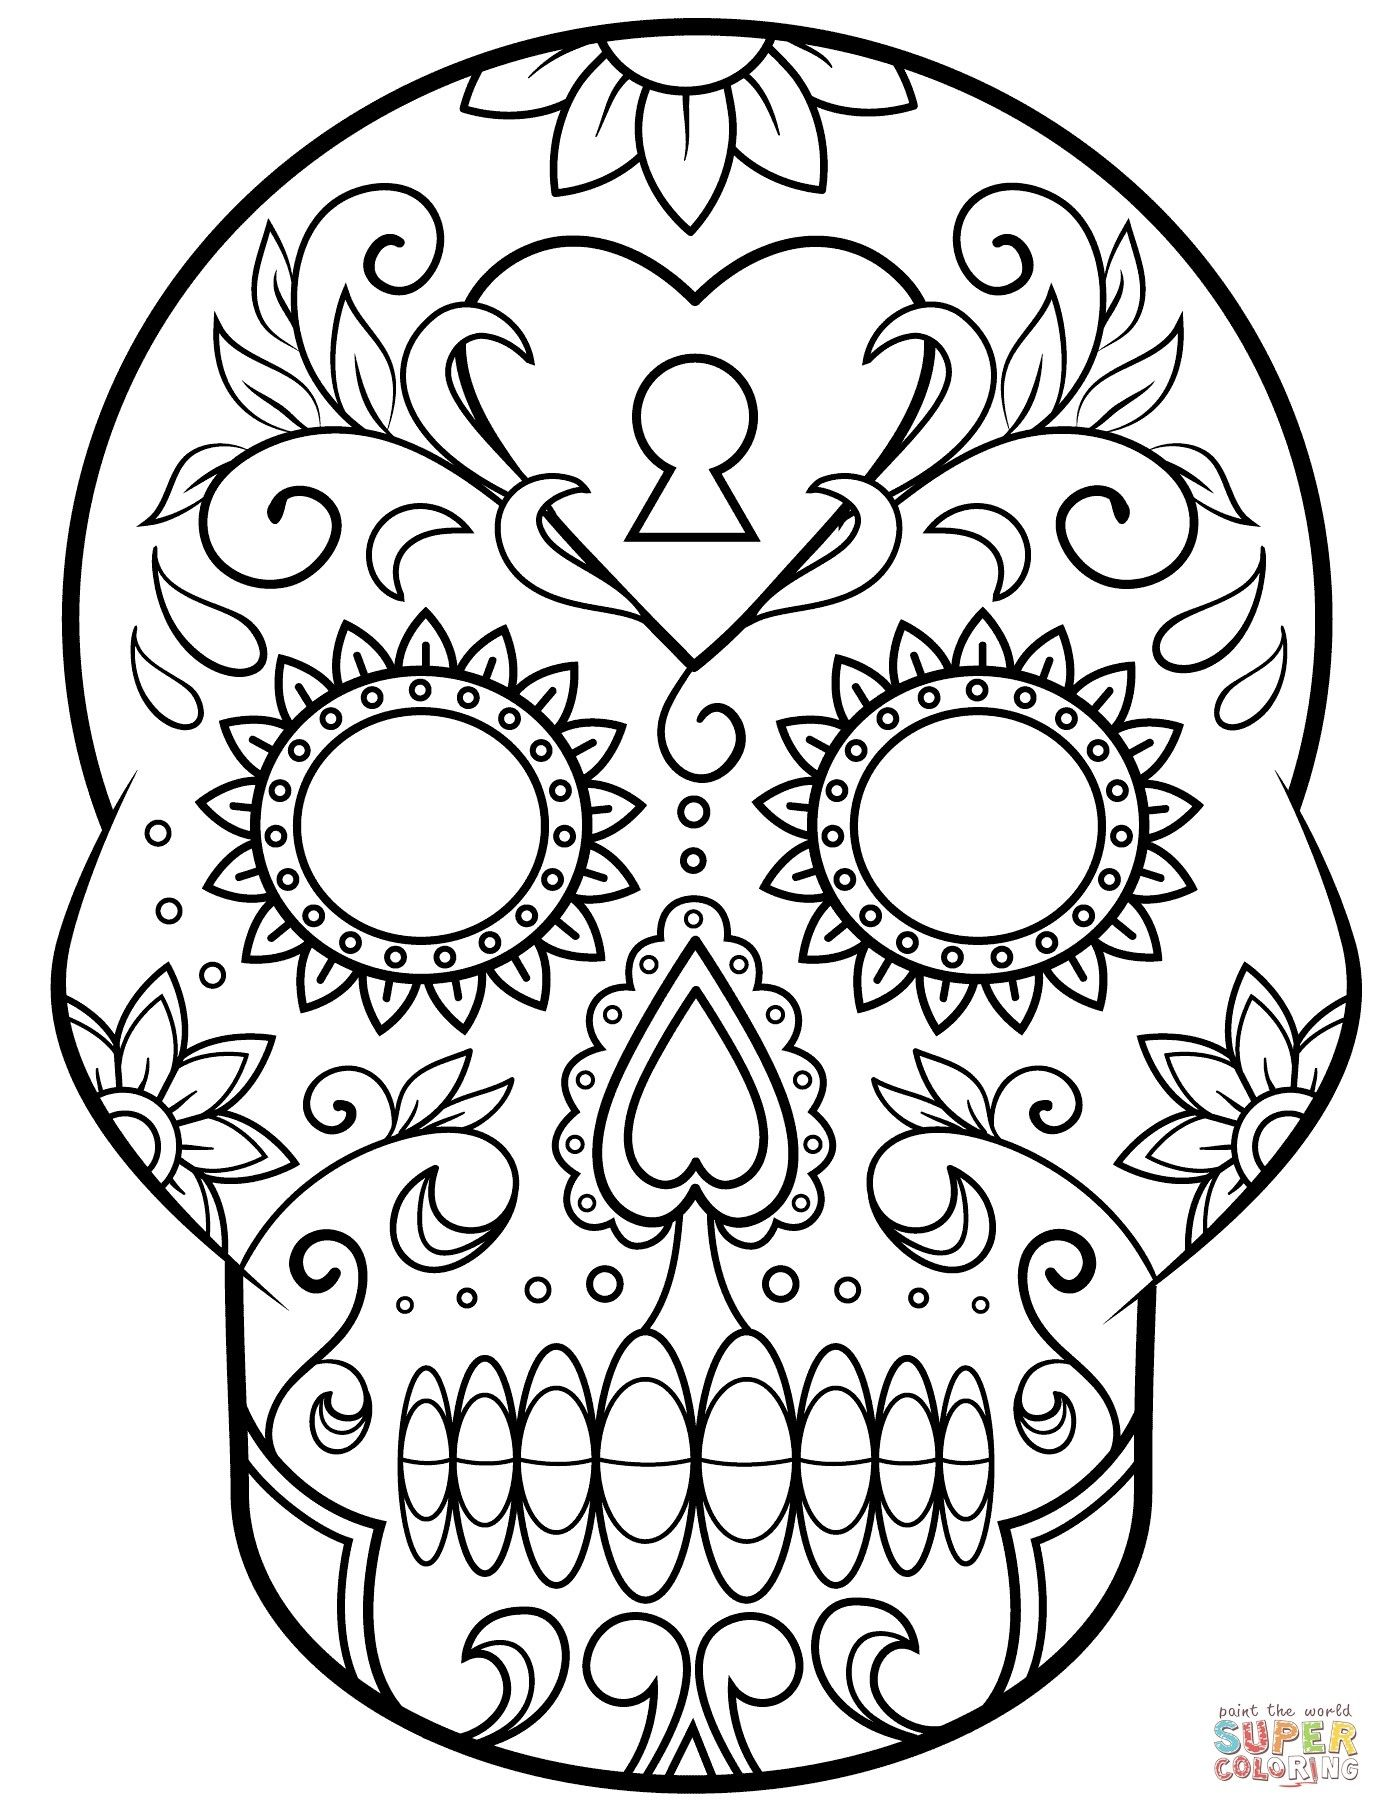 Best Of Skull Coloring Pages To Print Wallpapers Of Simple